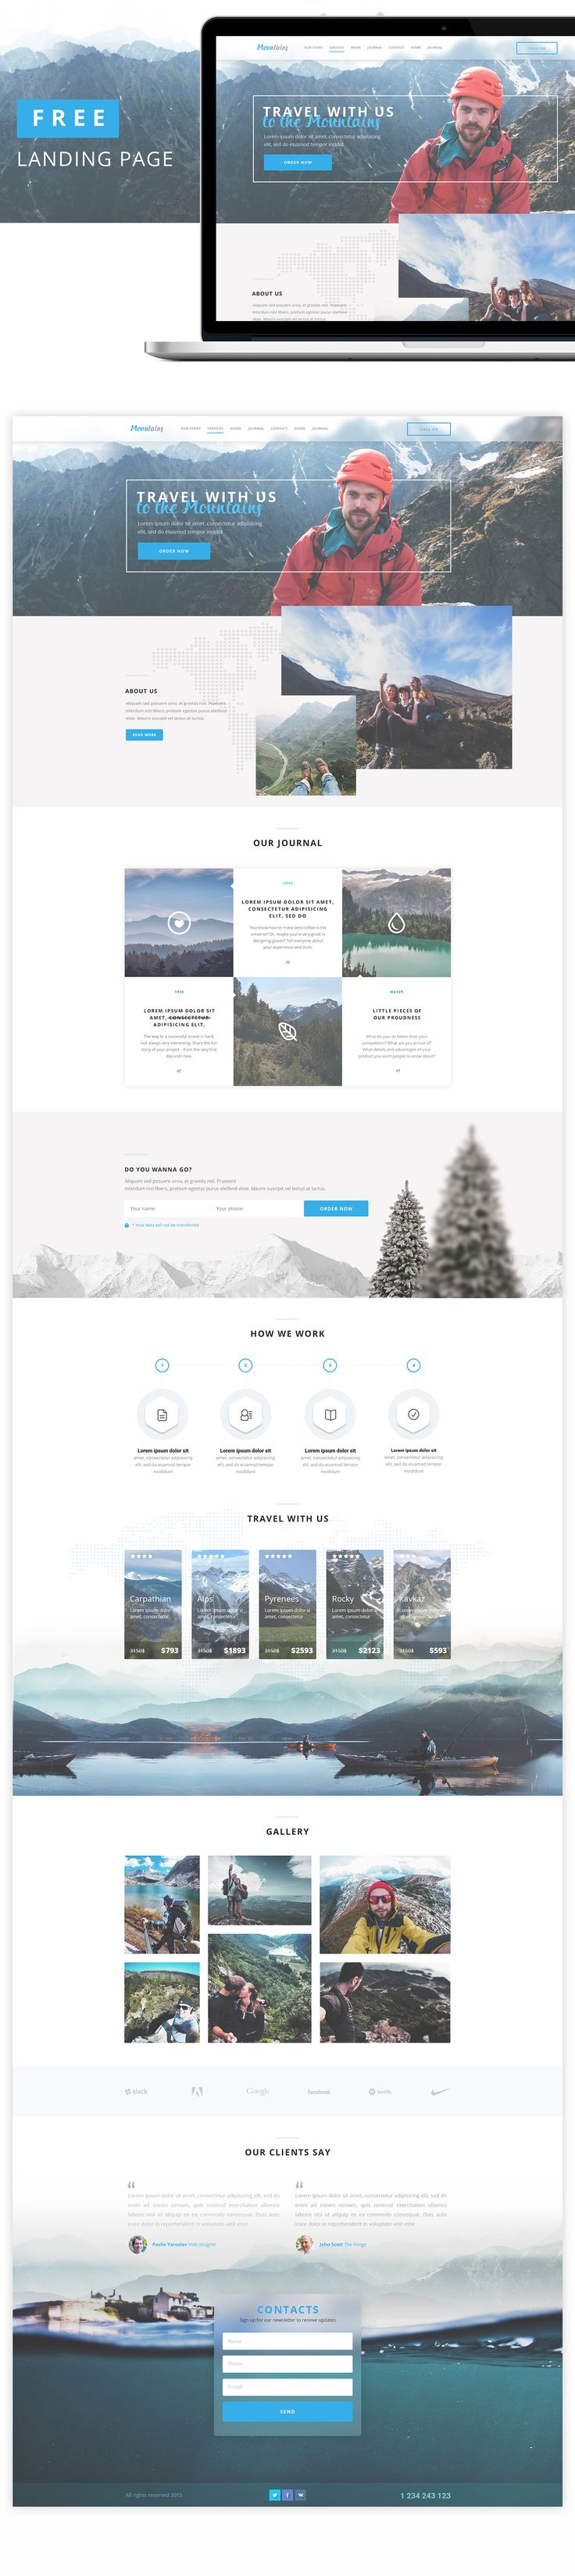 https://www.behance.net/gallery/27999261/Mountains-Landing-Page-FREE-(psd)